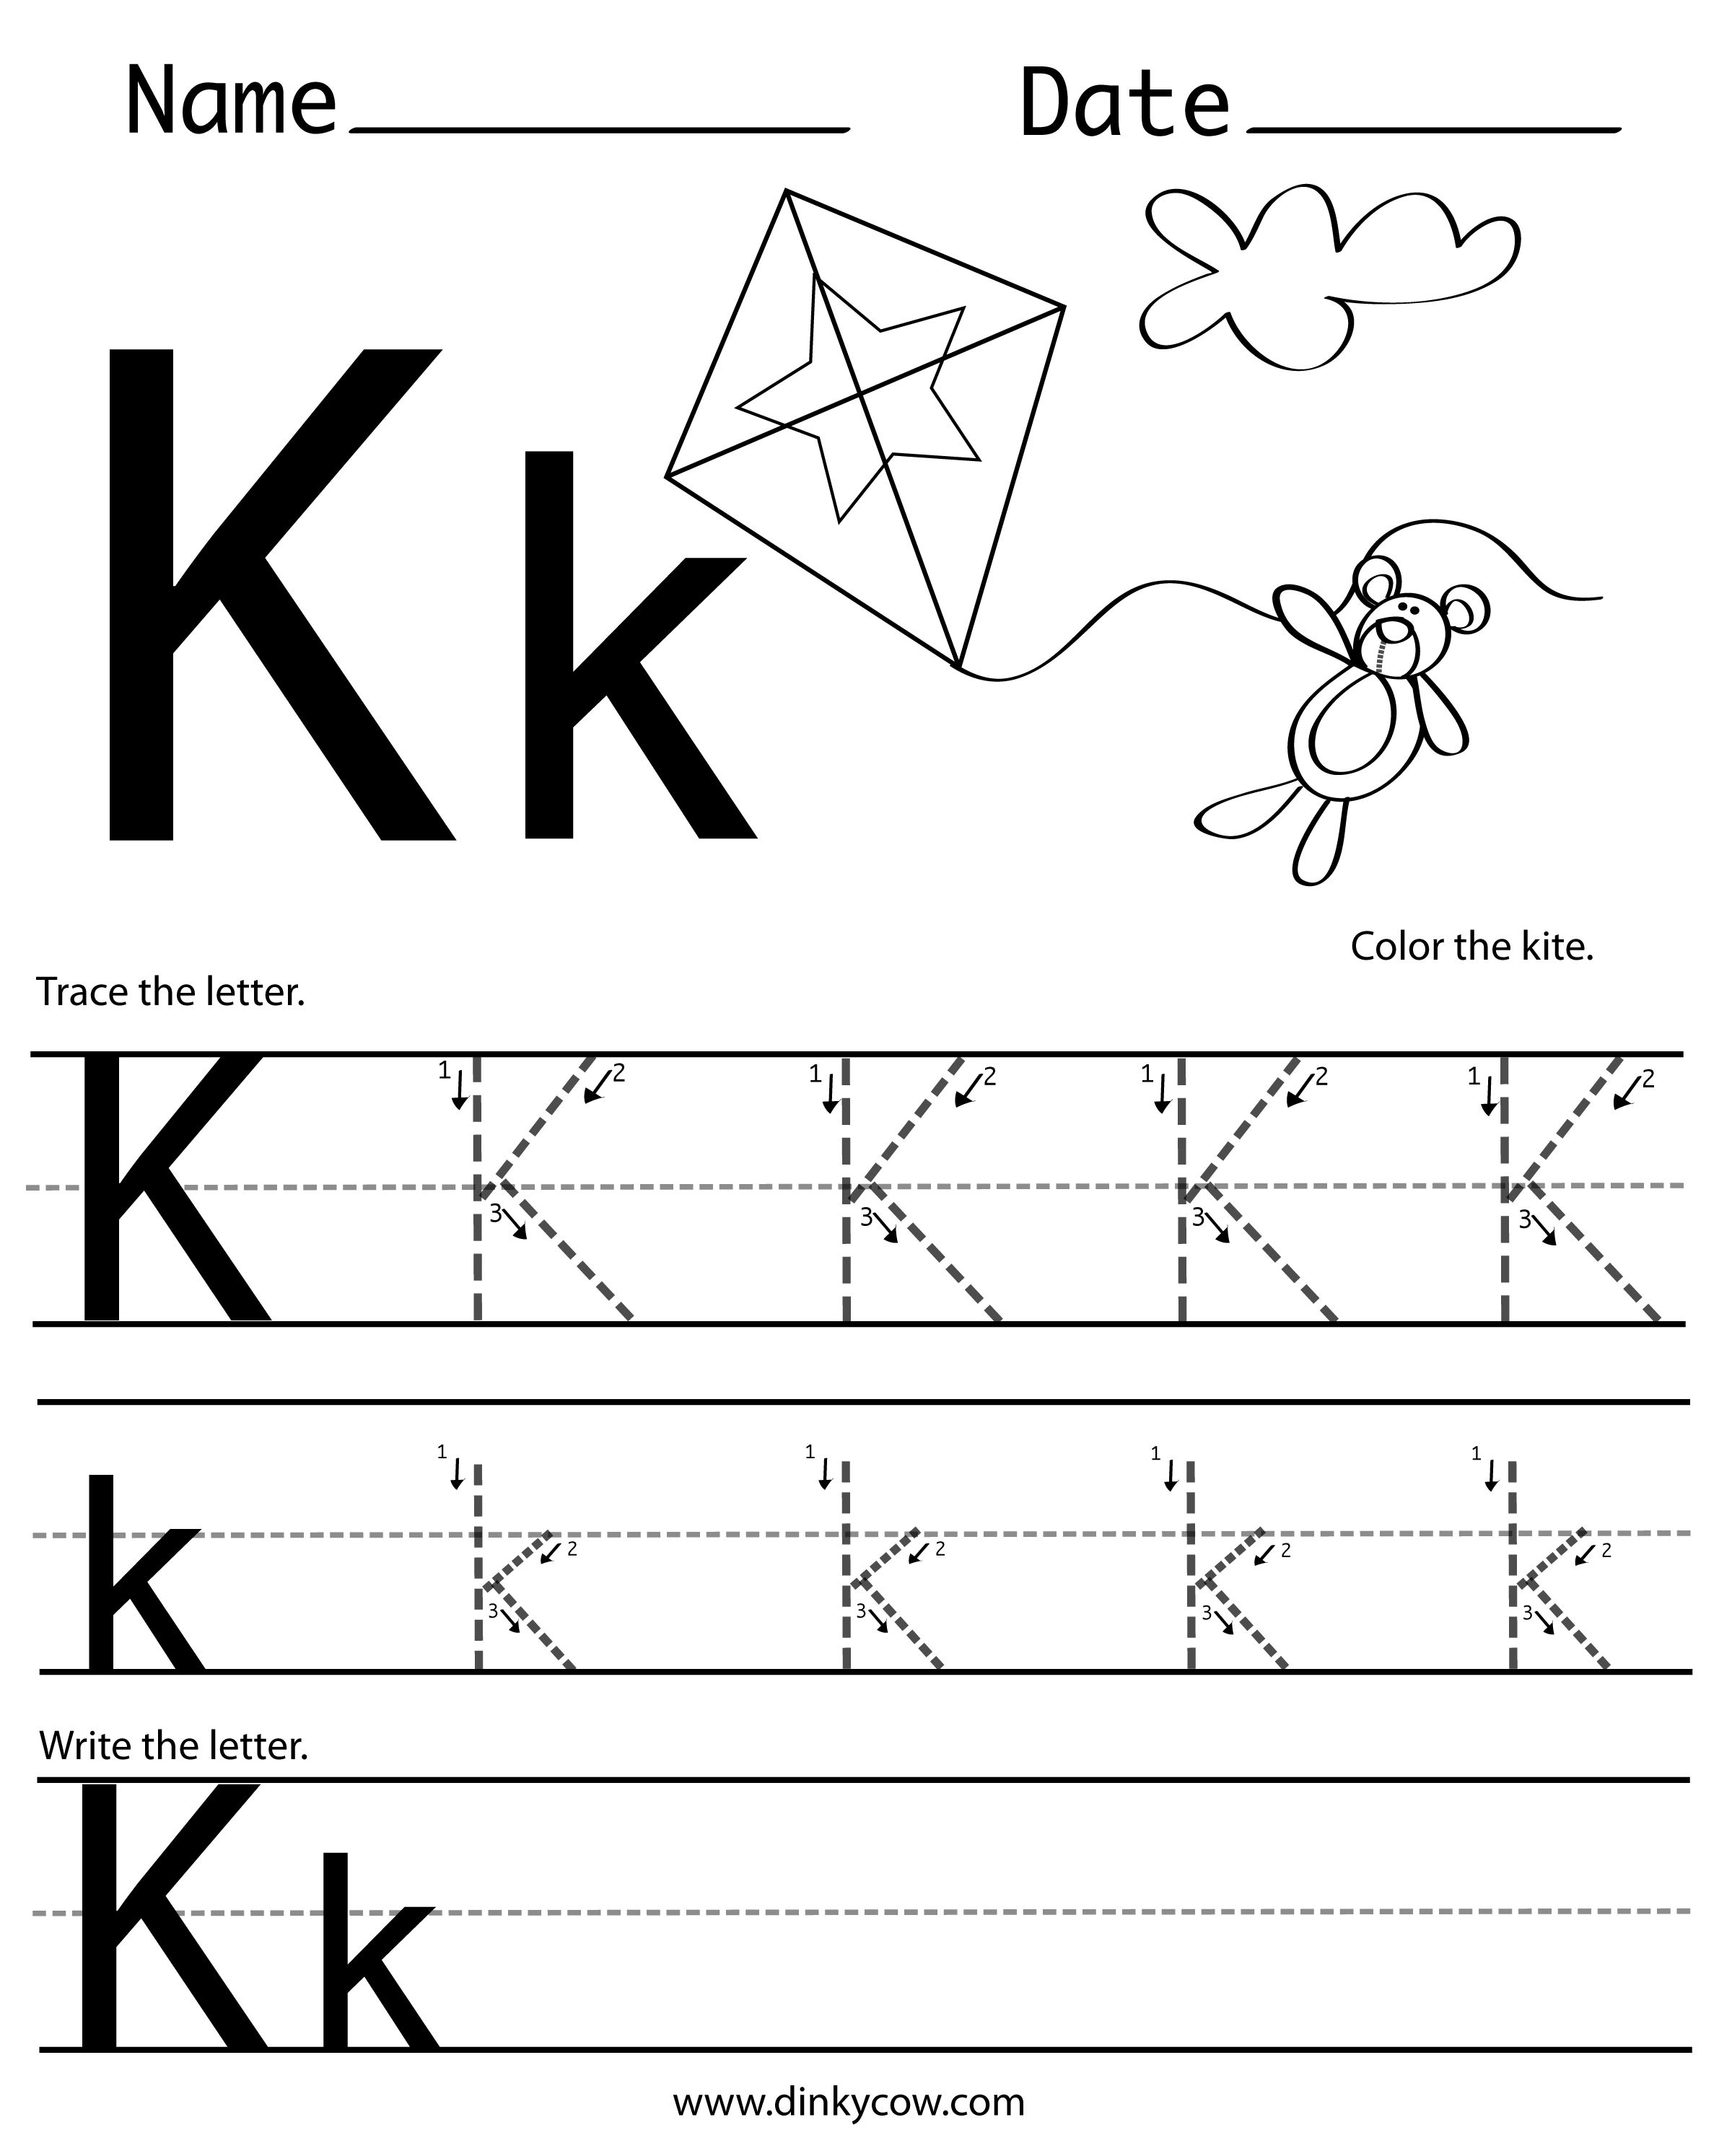 worksheet Dot To Dot Name Tracing Worksheets pin by mareese on tracing pinterest teacher and students dot to color numbers